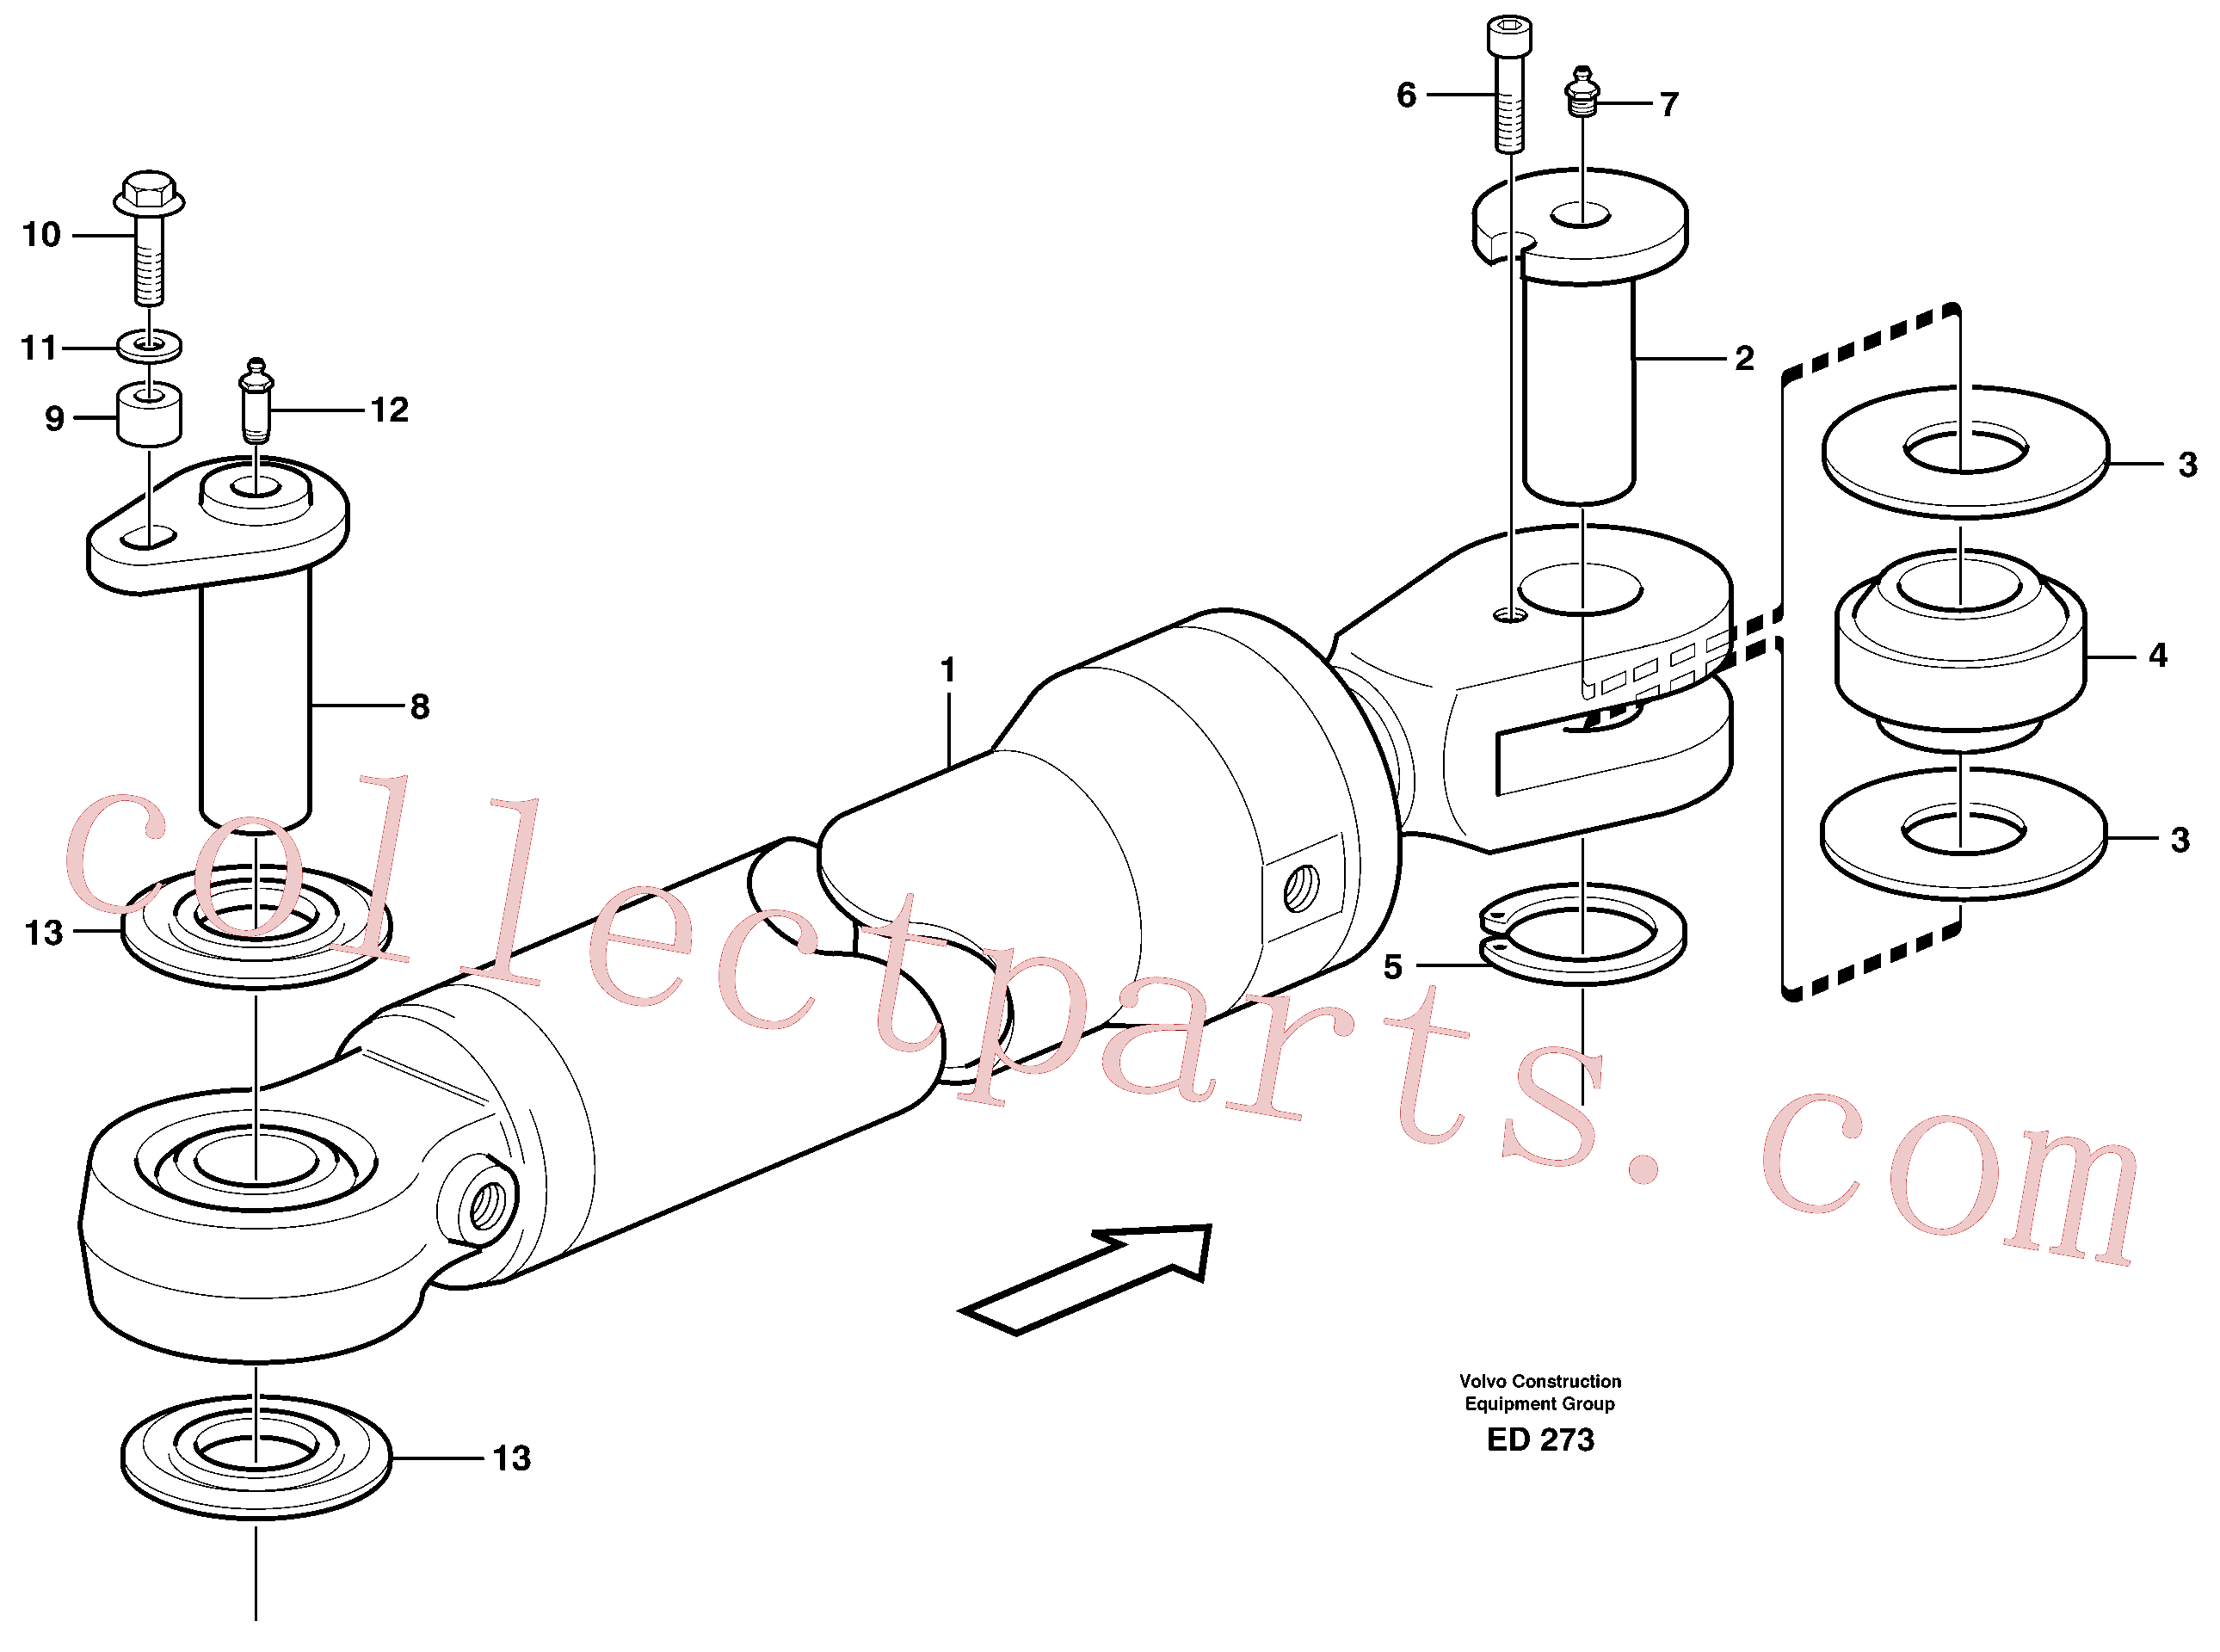 VOE11704196 for Volvo Hydraulic cylinder with fitting parts(ED273 assembly)